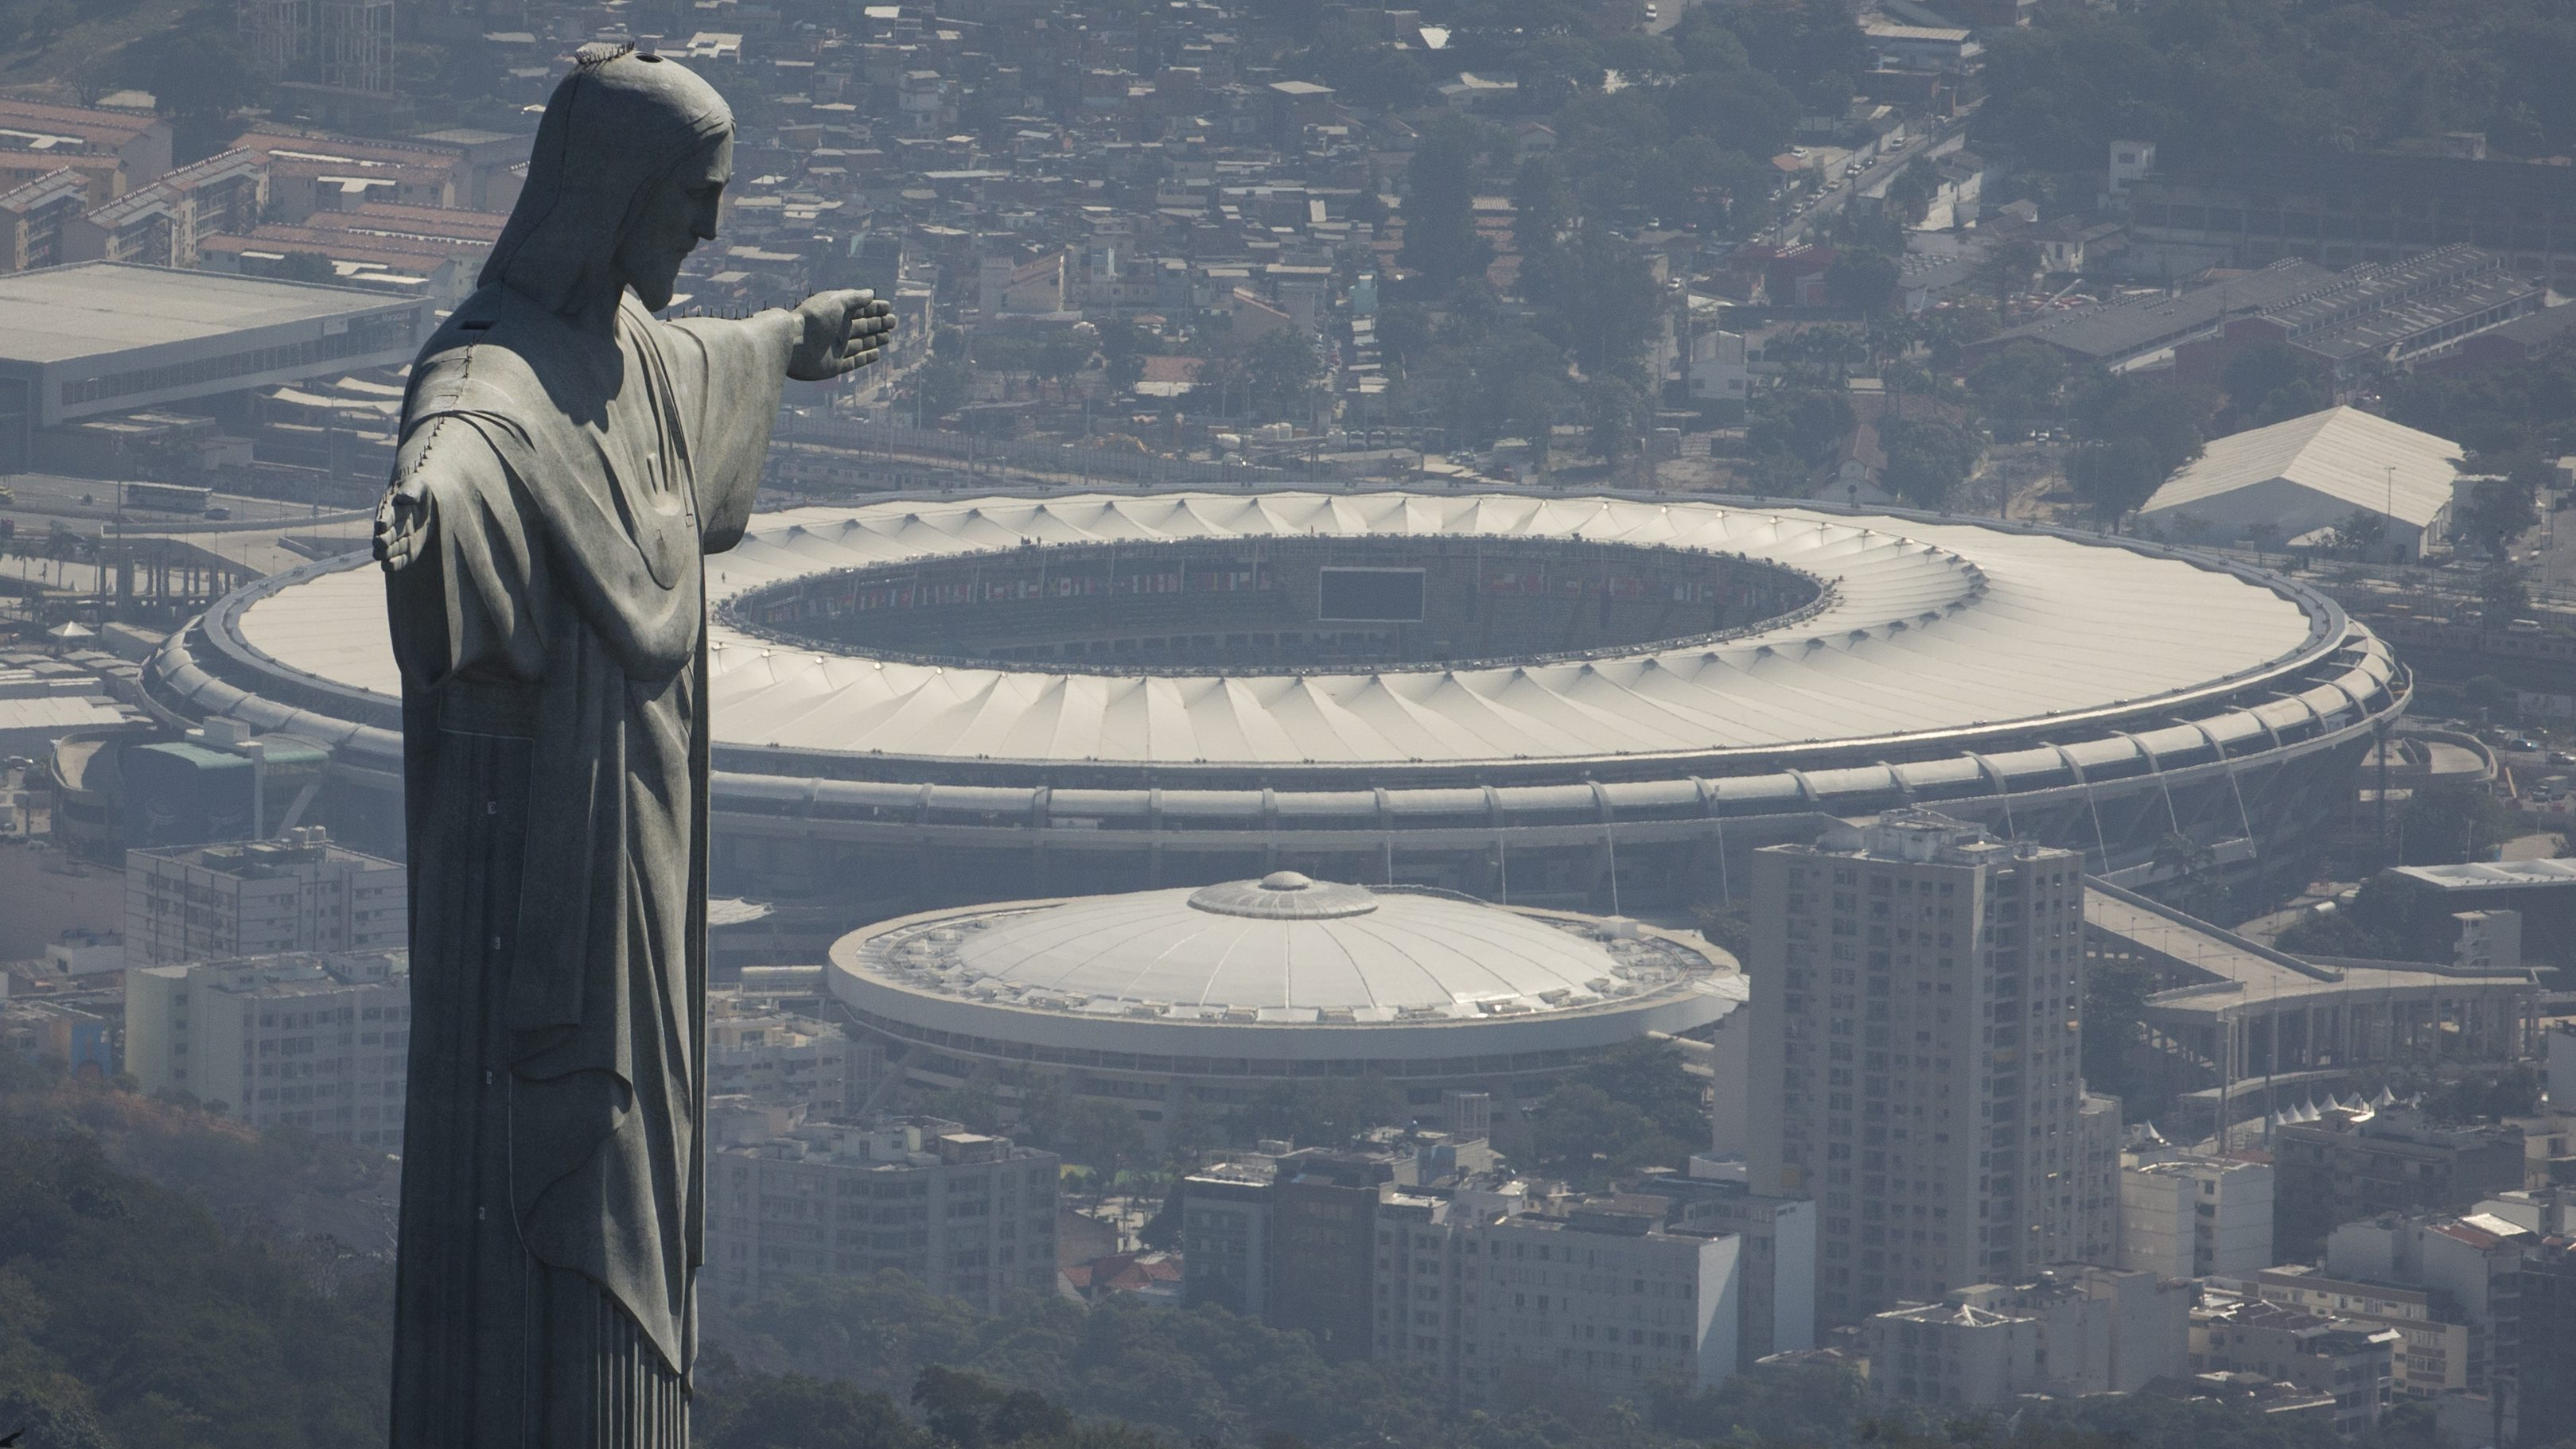 rio olympics christ the redeemer